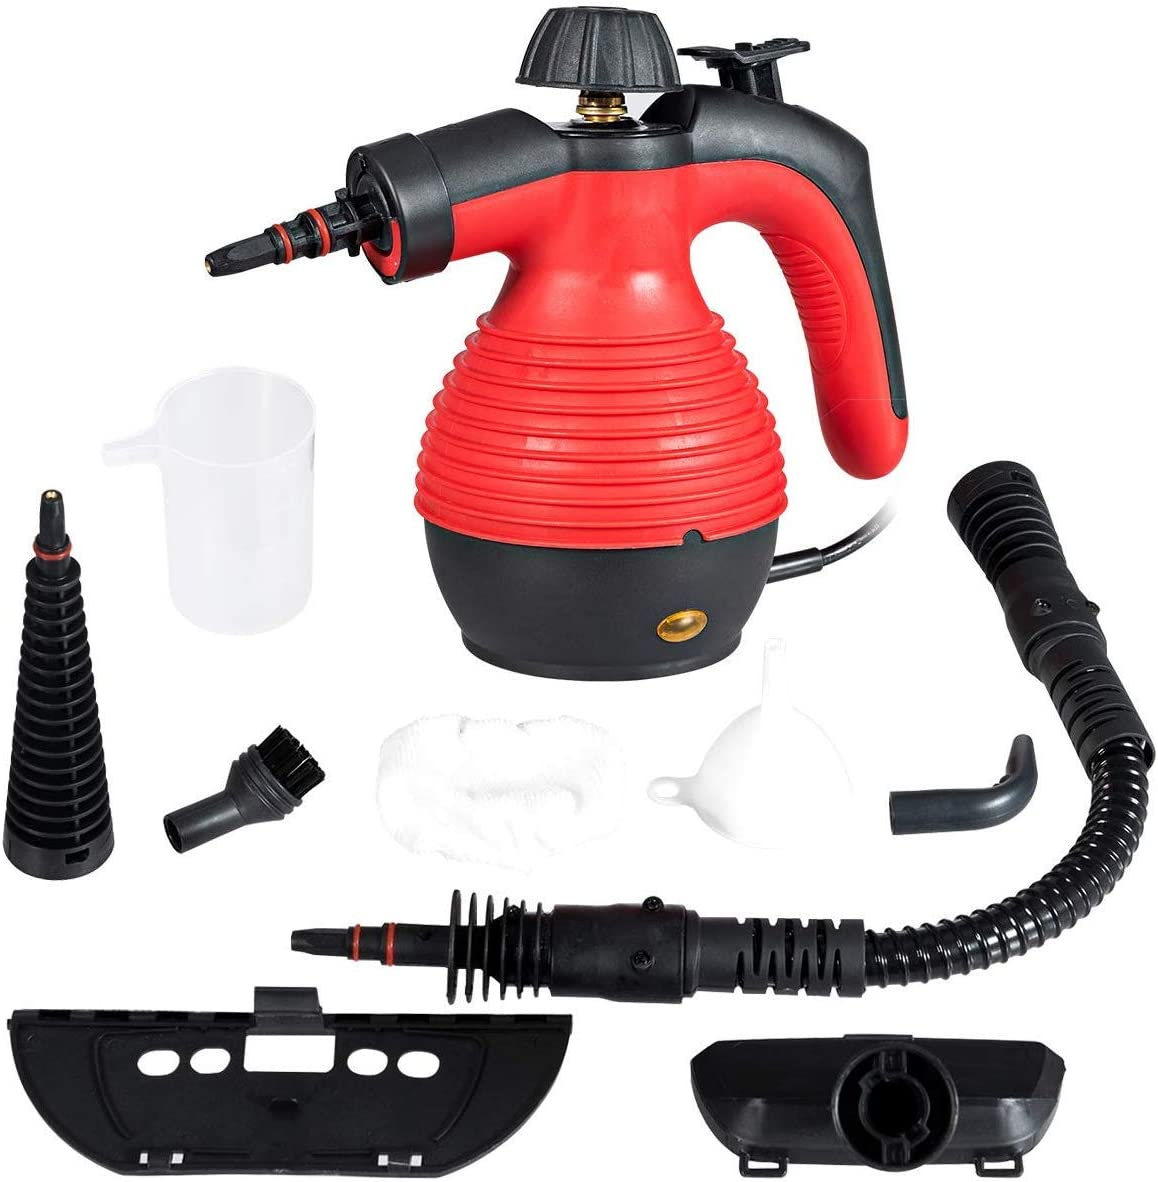 GOFLAME Steam Cleaner 1050W Handled Multi-Purpose Powerful Steam, Sanitizer, Steamer, Steam Iron, Remove Stains/Grease from Bathroom, Kitchen